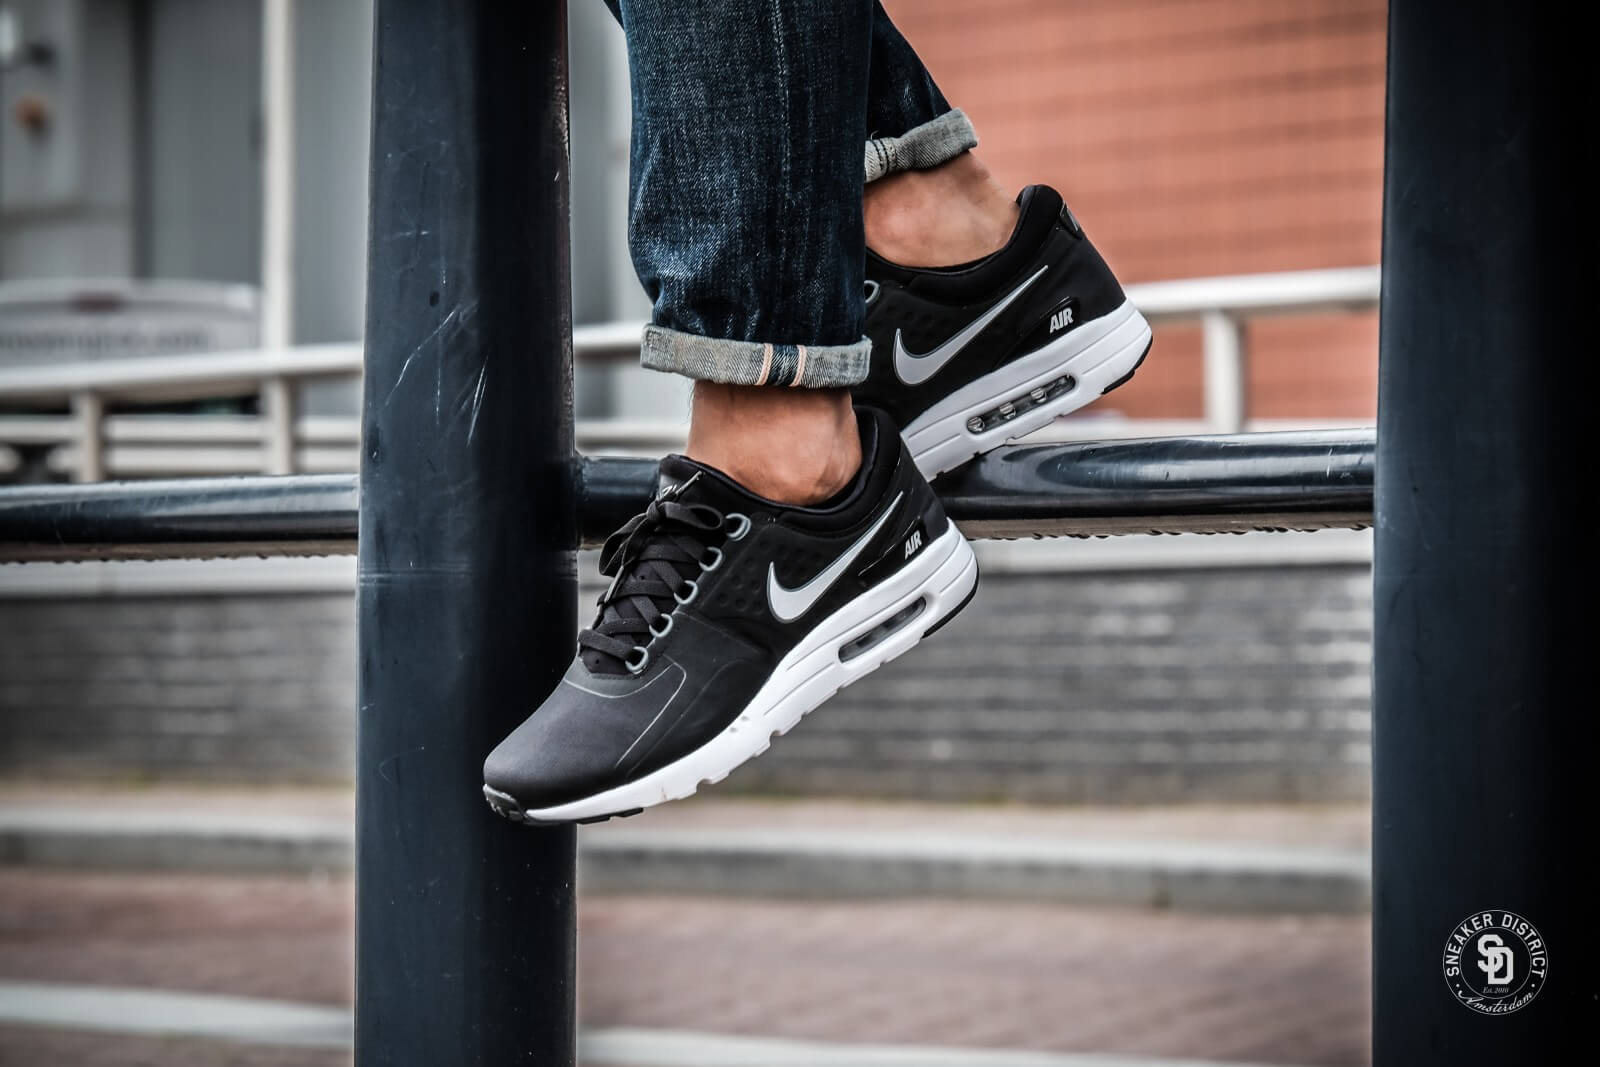 promo code for air max zero essential black ops 3a59f fba8d